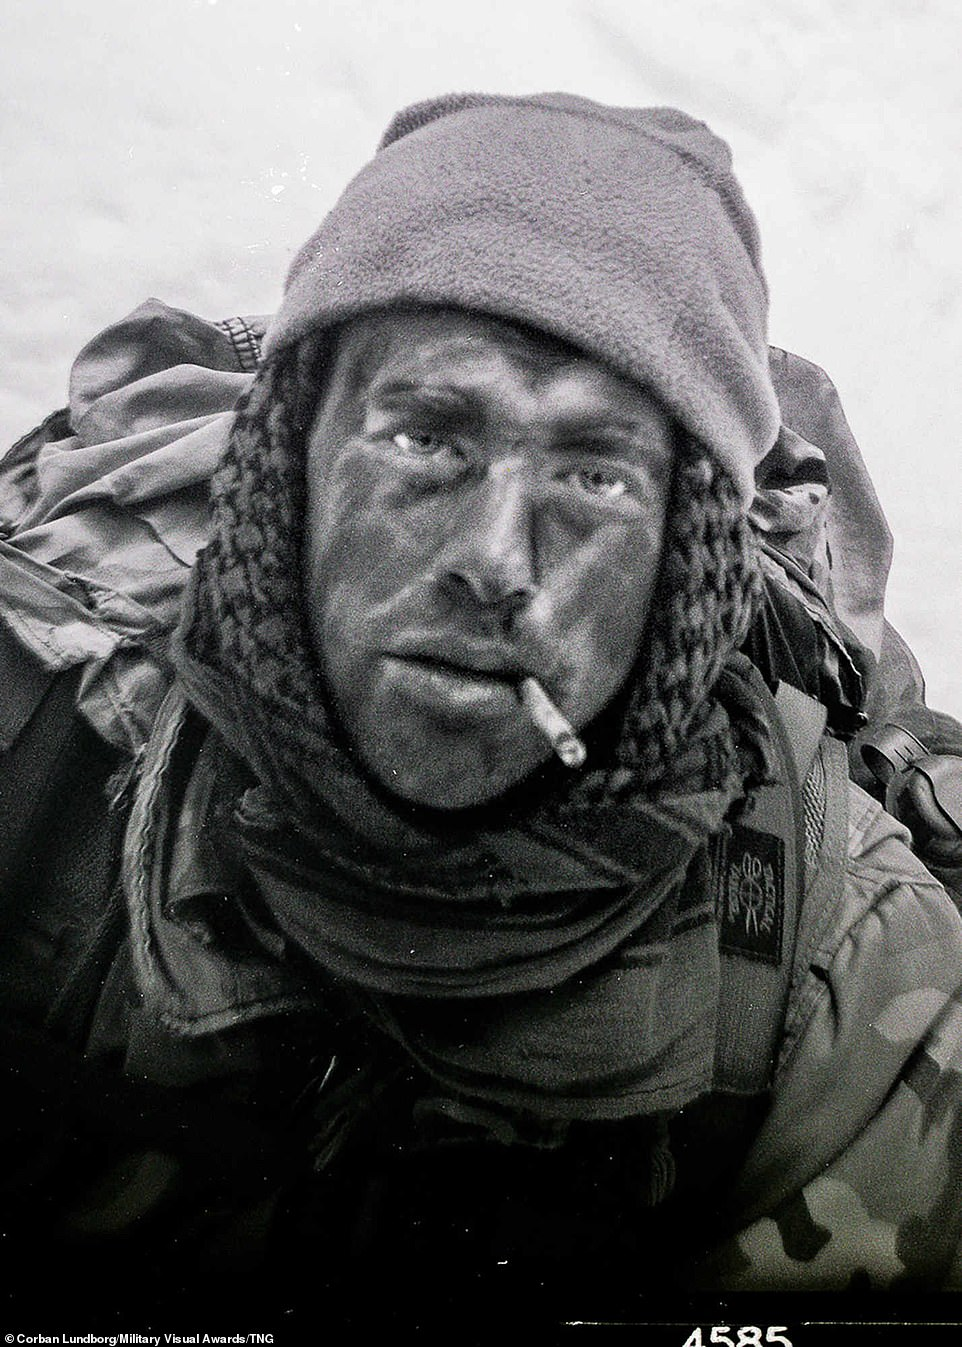 In a photograph which looks dated but was in fact taken on February 25, 2020, an Airman applies camouflage to his face while appearing to smoke during Survival, Evasion, Resistance and Escape training, at the Fairchild Air Force Base, Washington